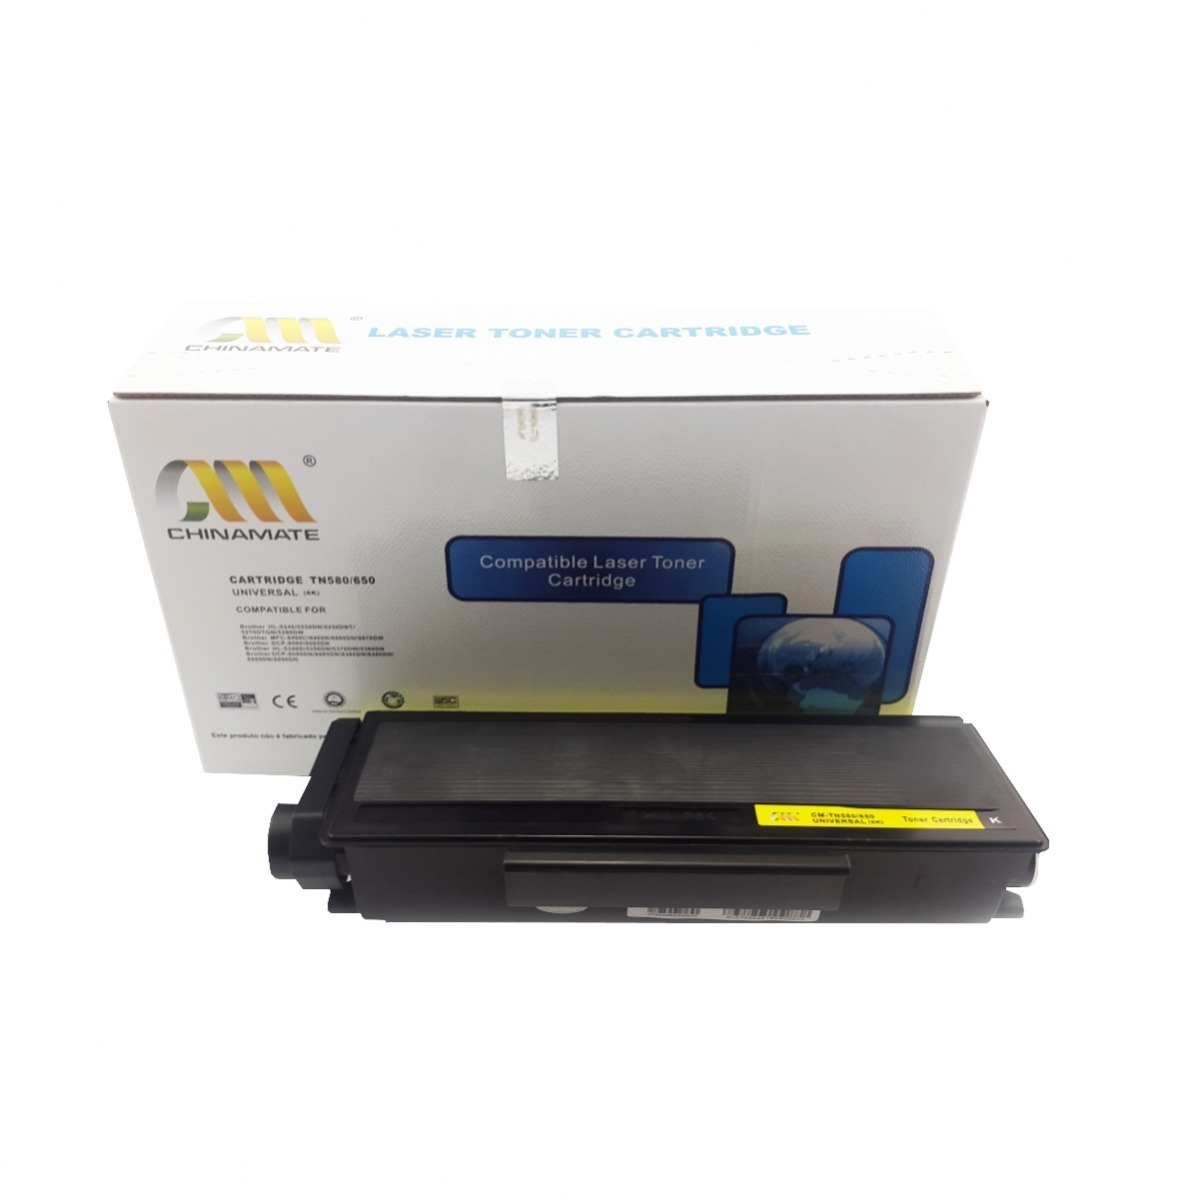 Brother HL-5370DWT Universal Printer Driver Windows 7